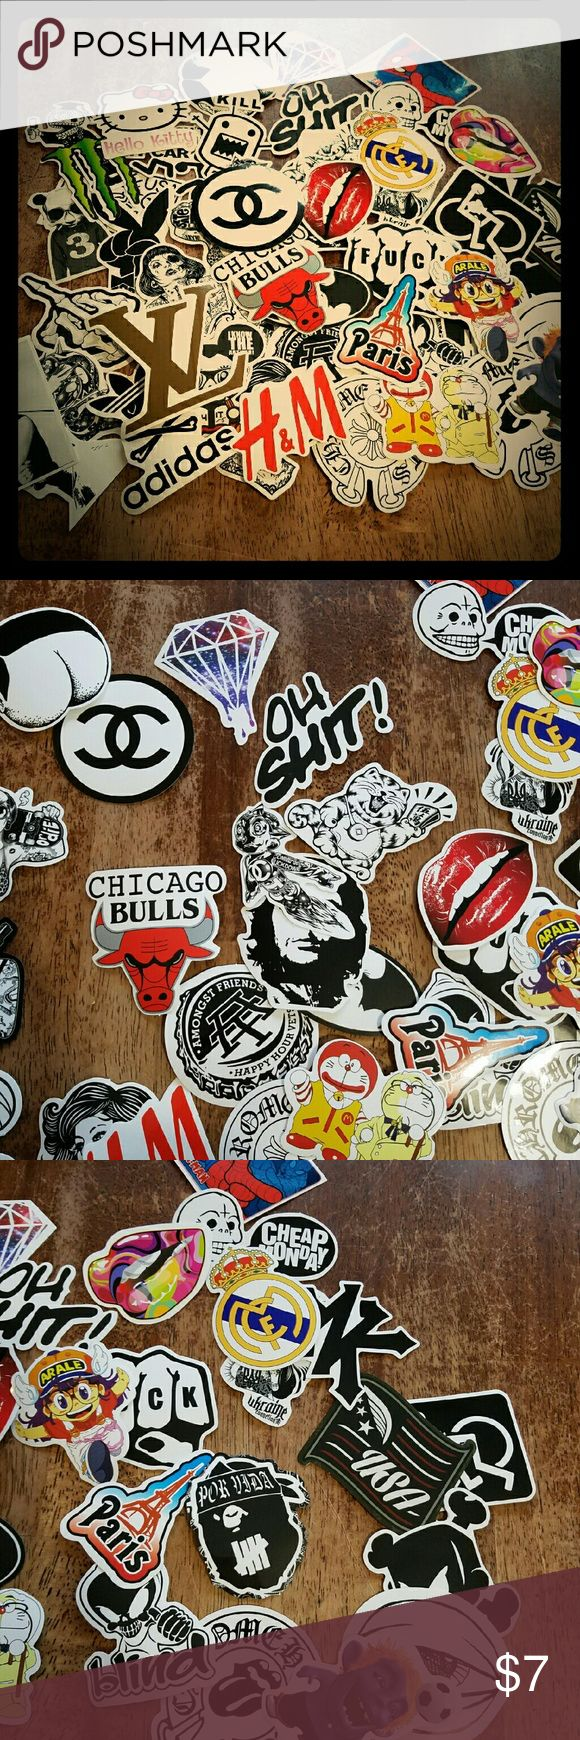 Audi r8 partial car wrapping sticker bomb stickerbomb by - 50 Variety Decals Stickerbomb Size 5 10cm Material Pvc Style